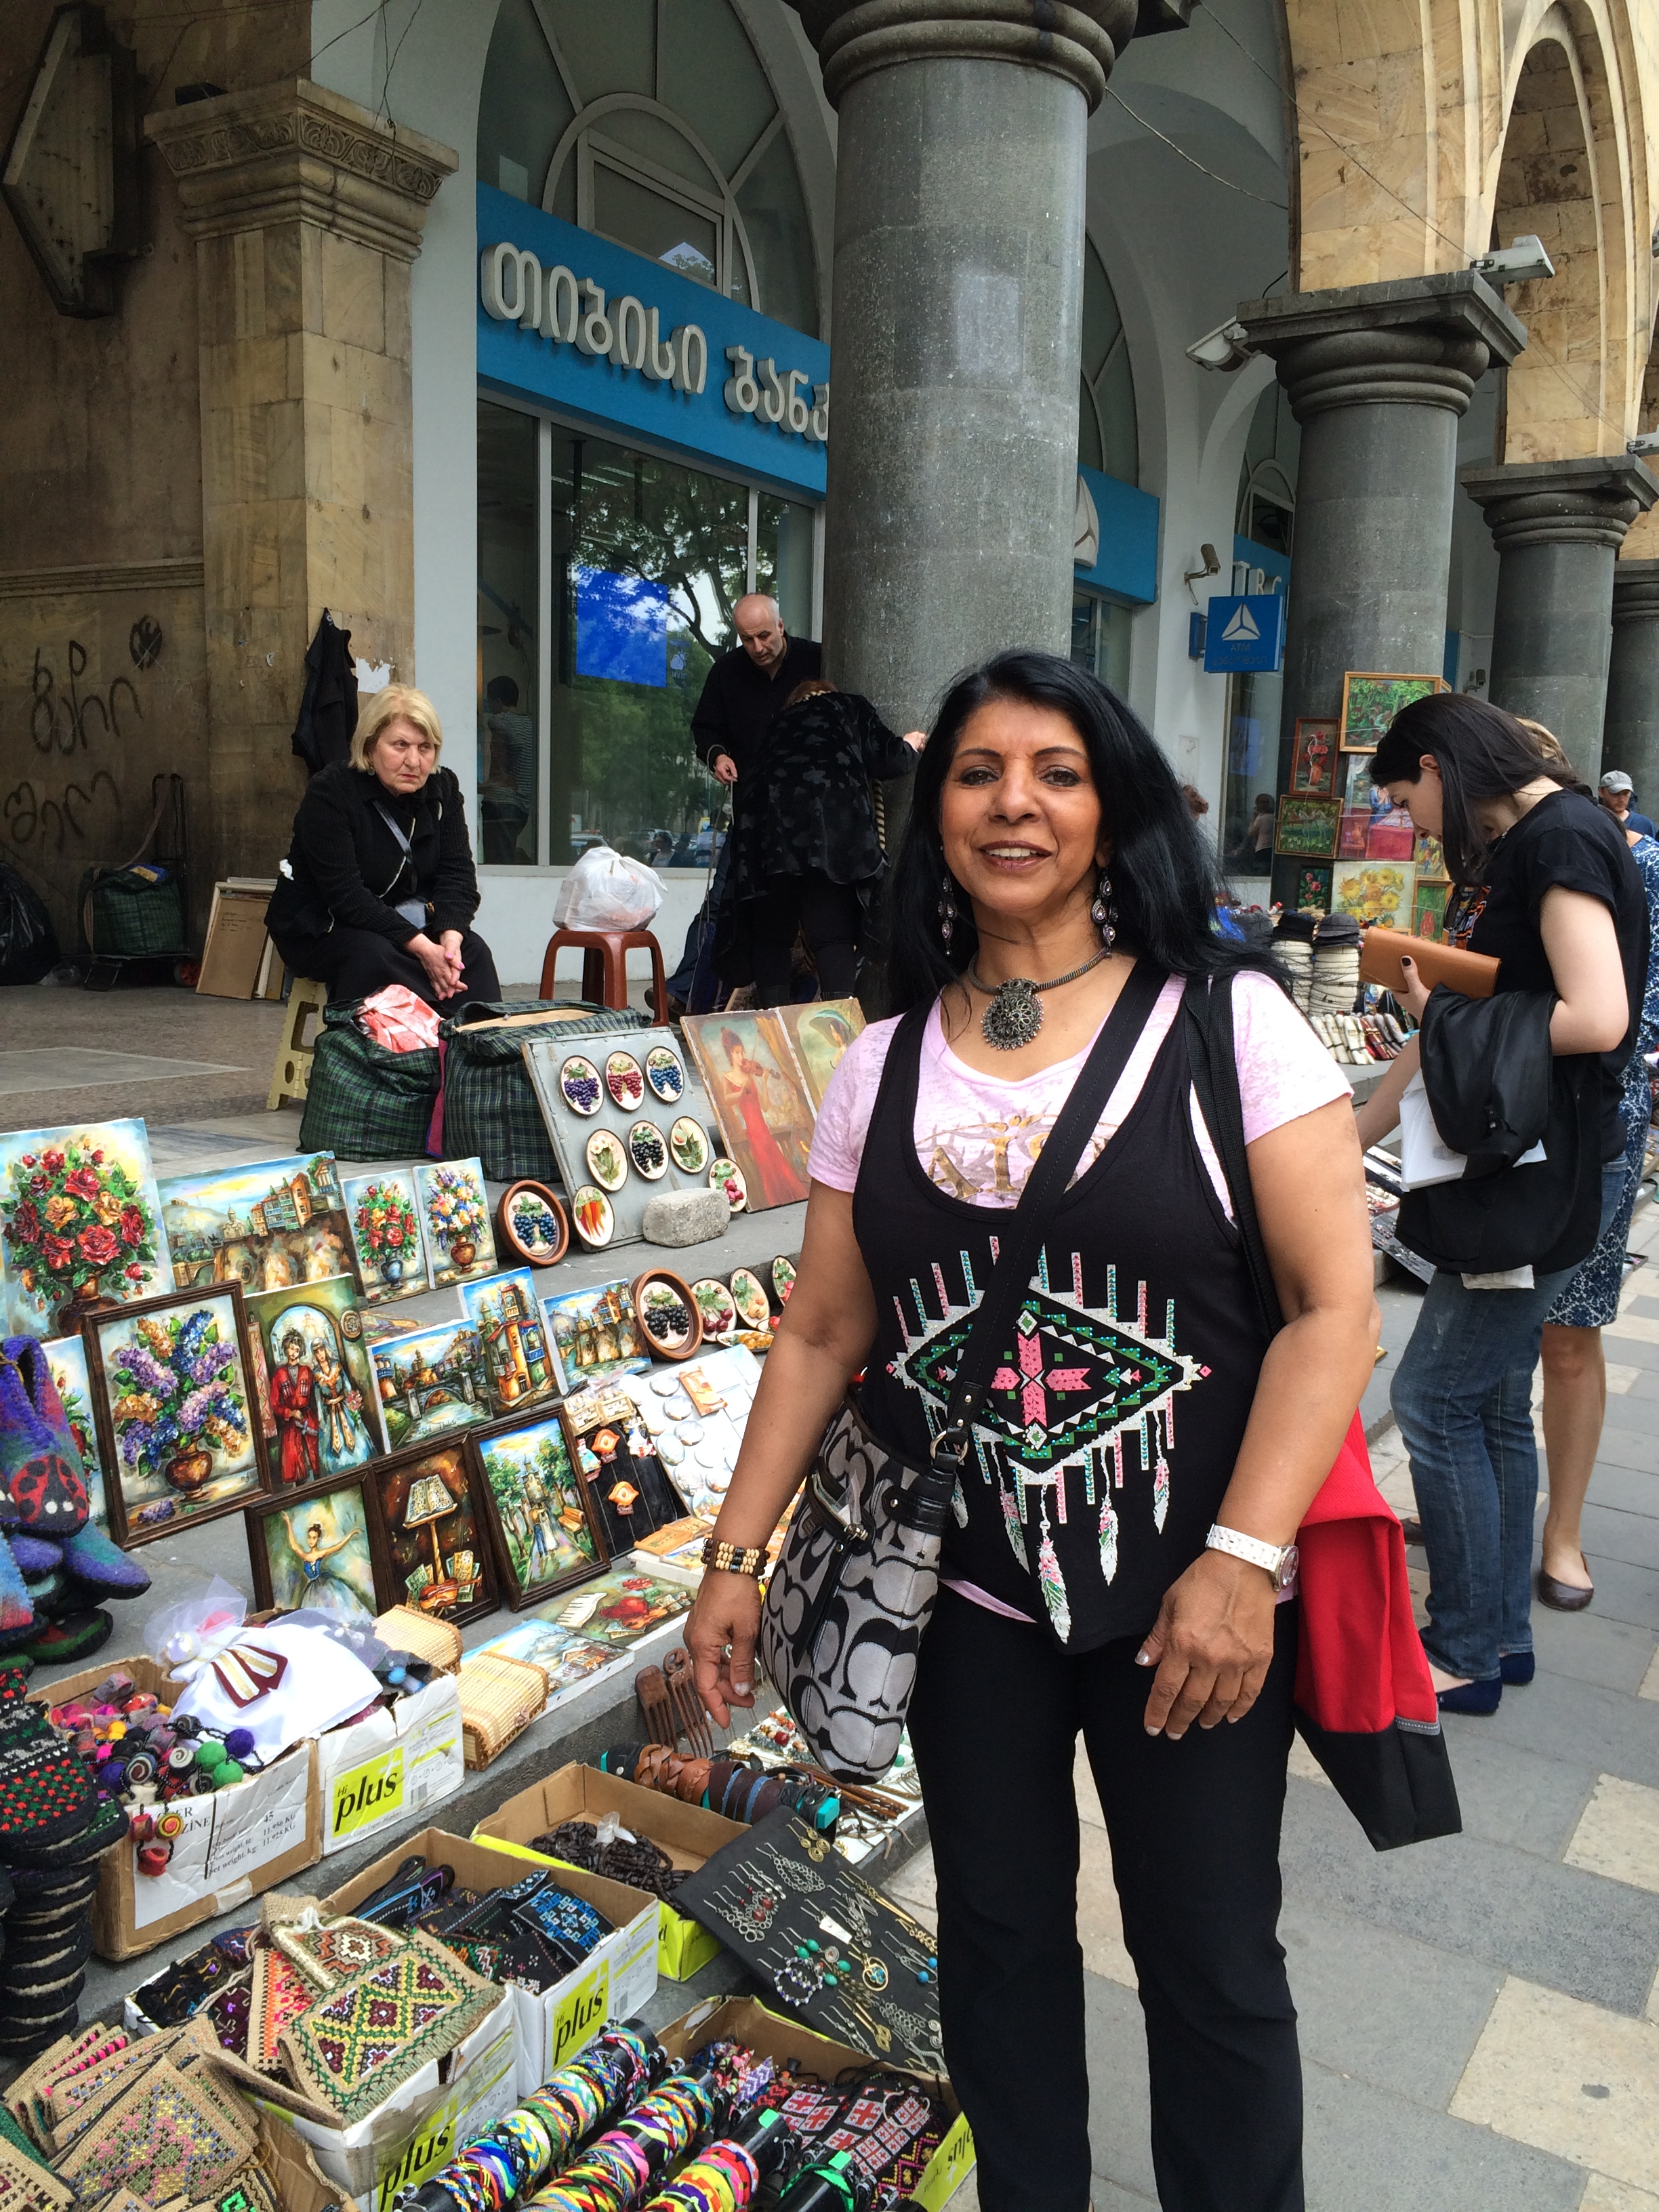 tbilisi travel essay sudha s travel essays sudha at dom sq tbilisi